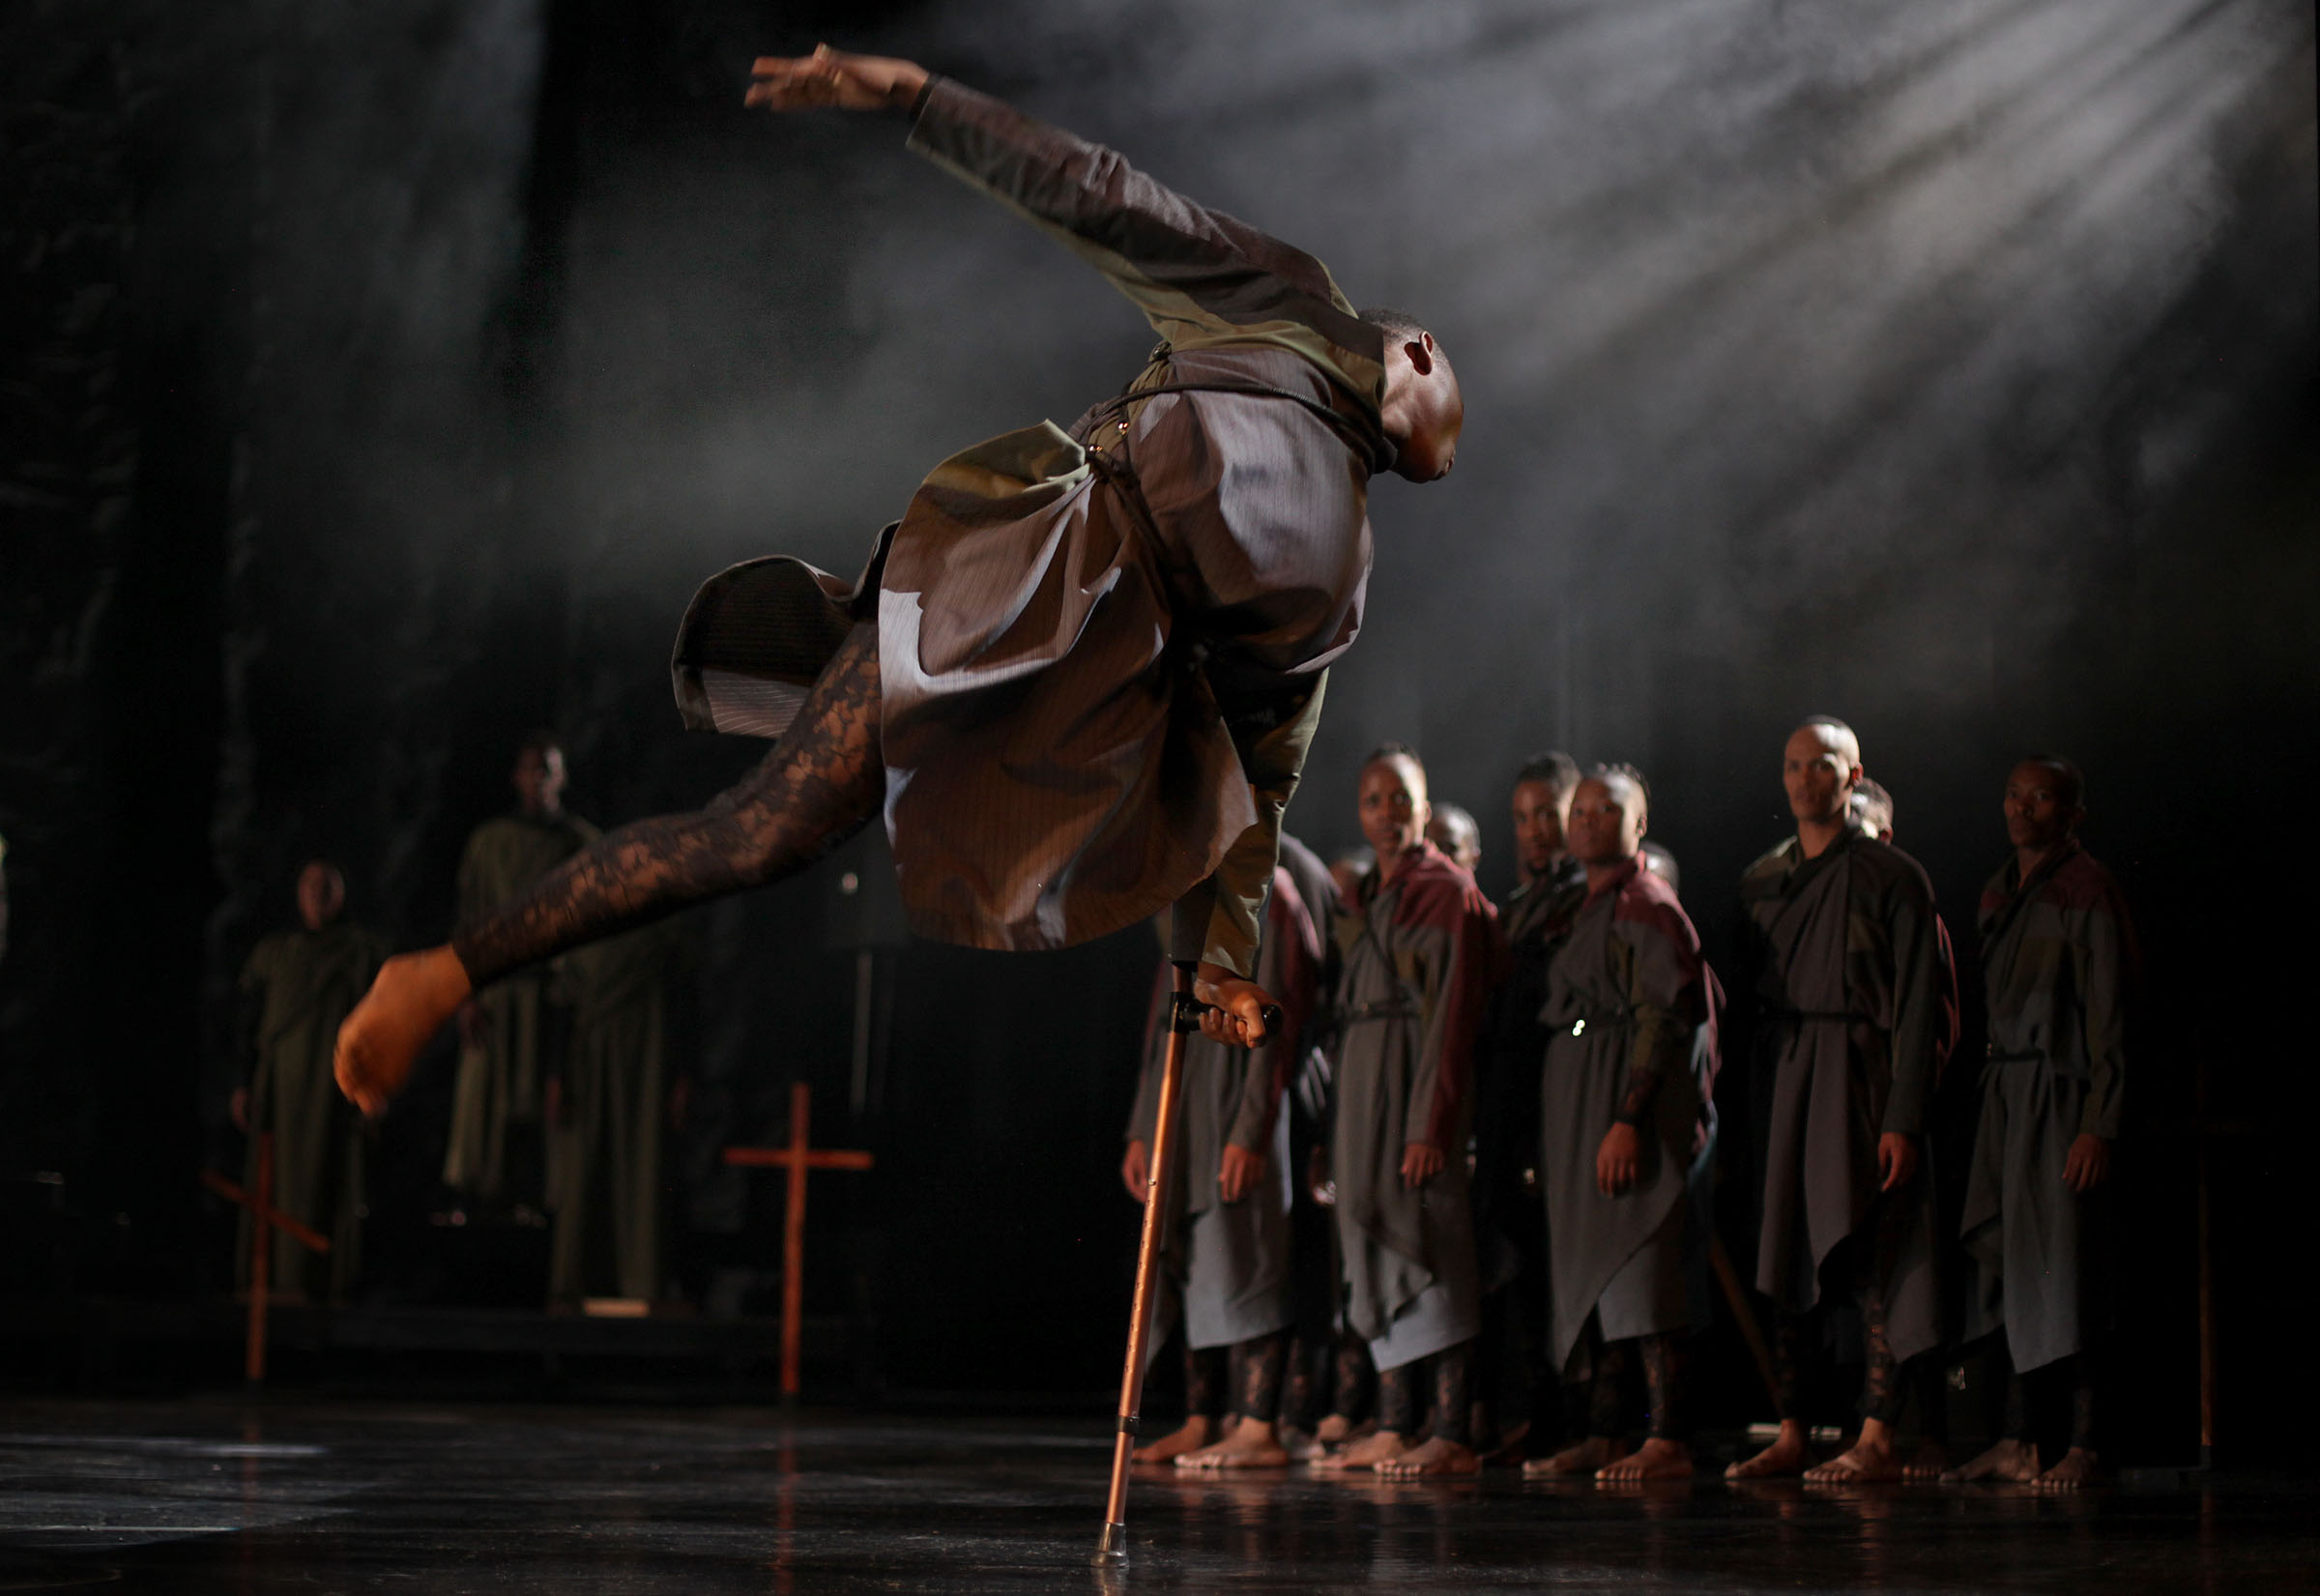 11 September 2019: Director Gregory Maqoma and his contemporary African dance company share an innovative, visually stunning full-length work that brings literature to life. The production has 20 dancers and 16 musicians on stage.